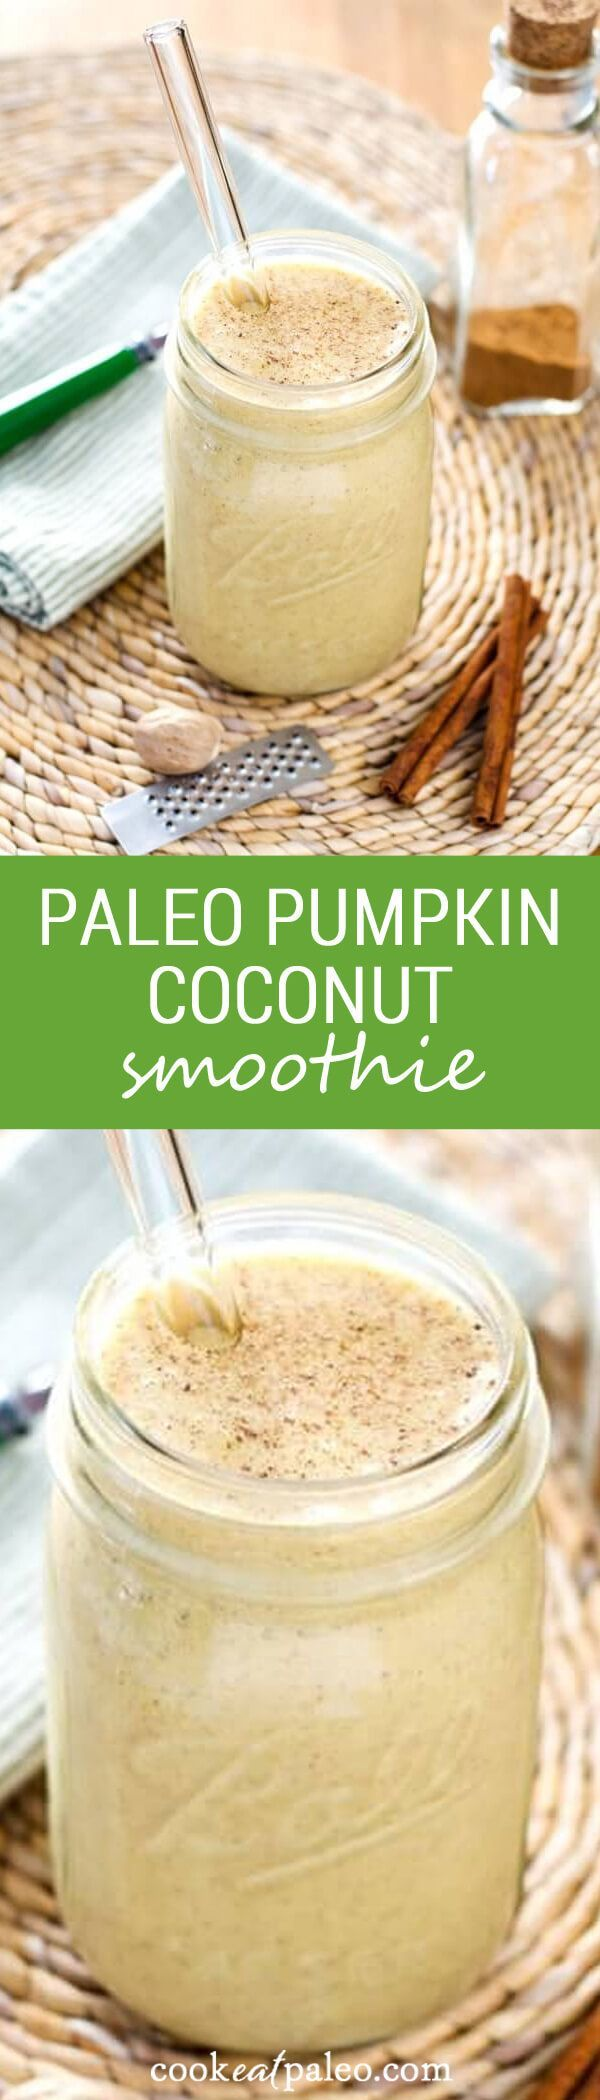 This Paleo Pumpkin Coconut Smoothie recipe is creamy, sweet and delicious without dairy or added sugar. A perfect quick and healthy paleo breakfast smoothie. ~ cookeatpaleo.com